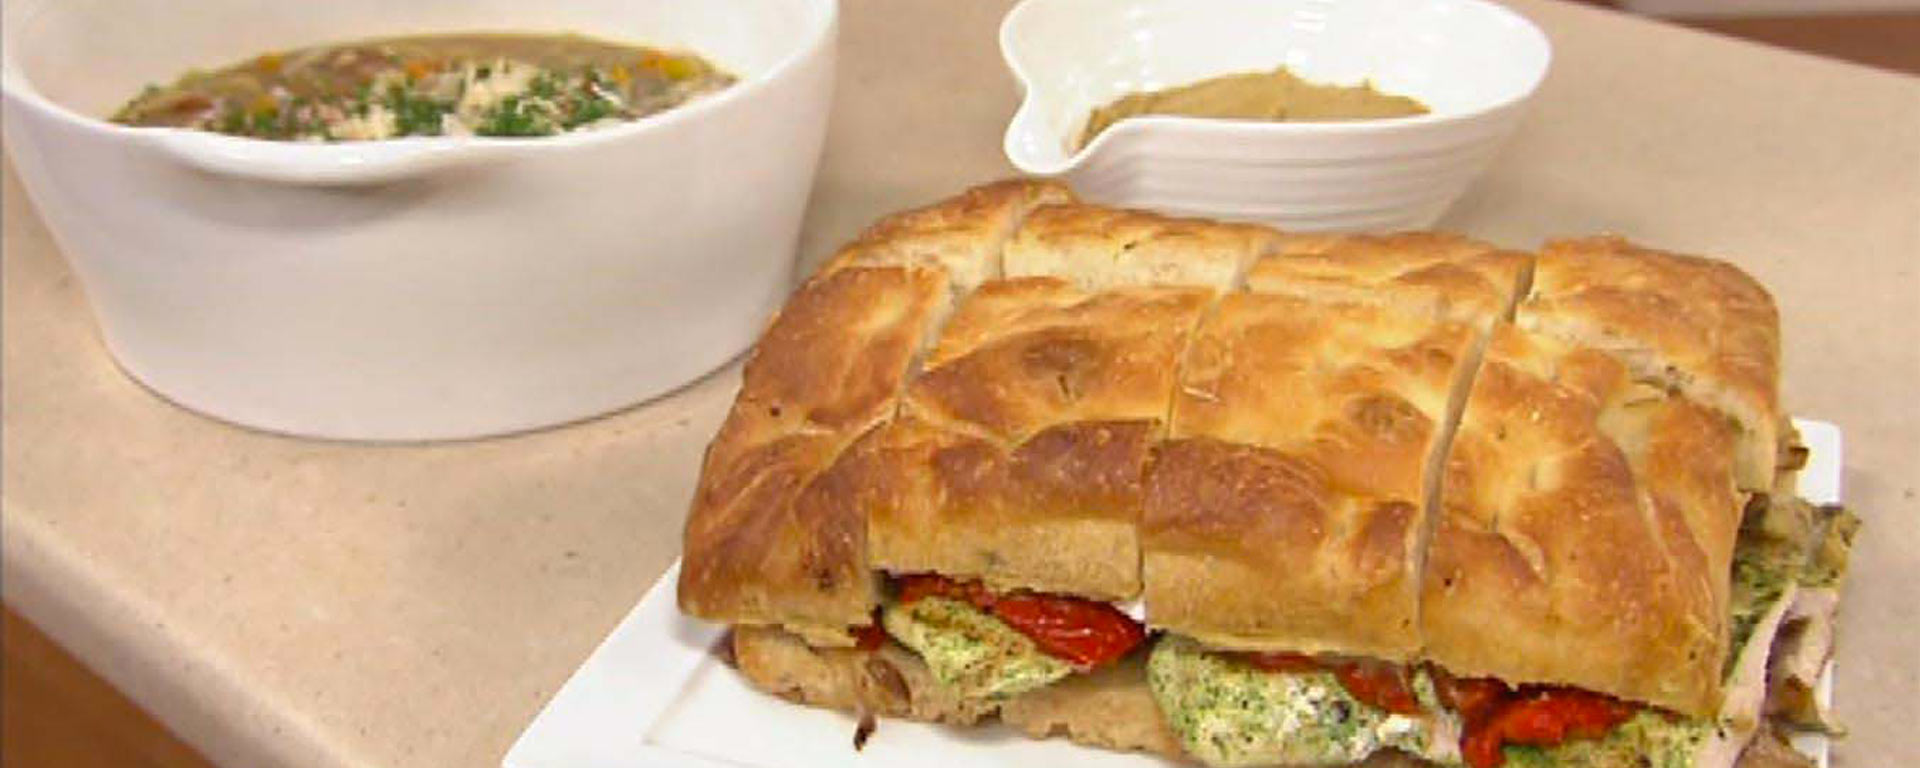 Photo for - Grilled Herb Marinated Chicken Focaccia Sandwich